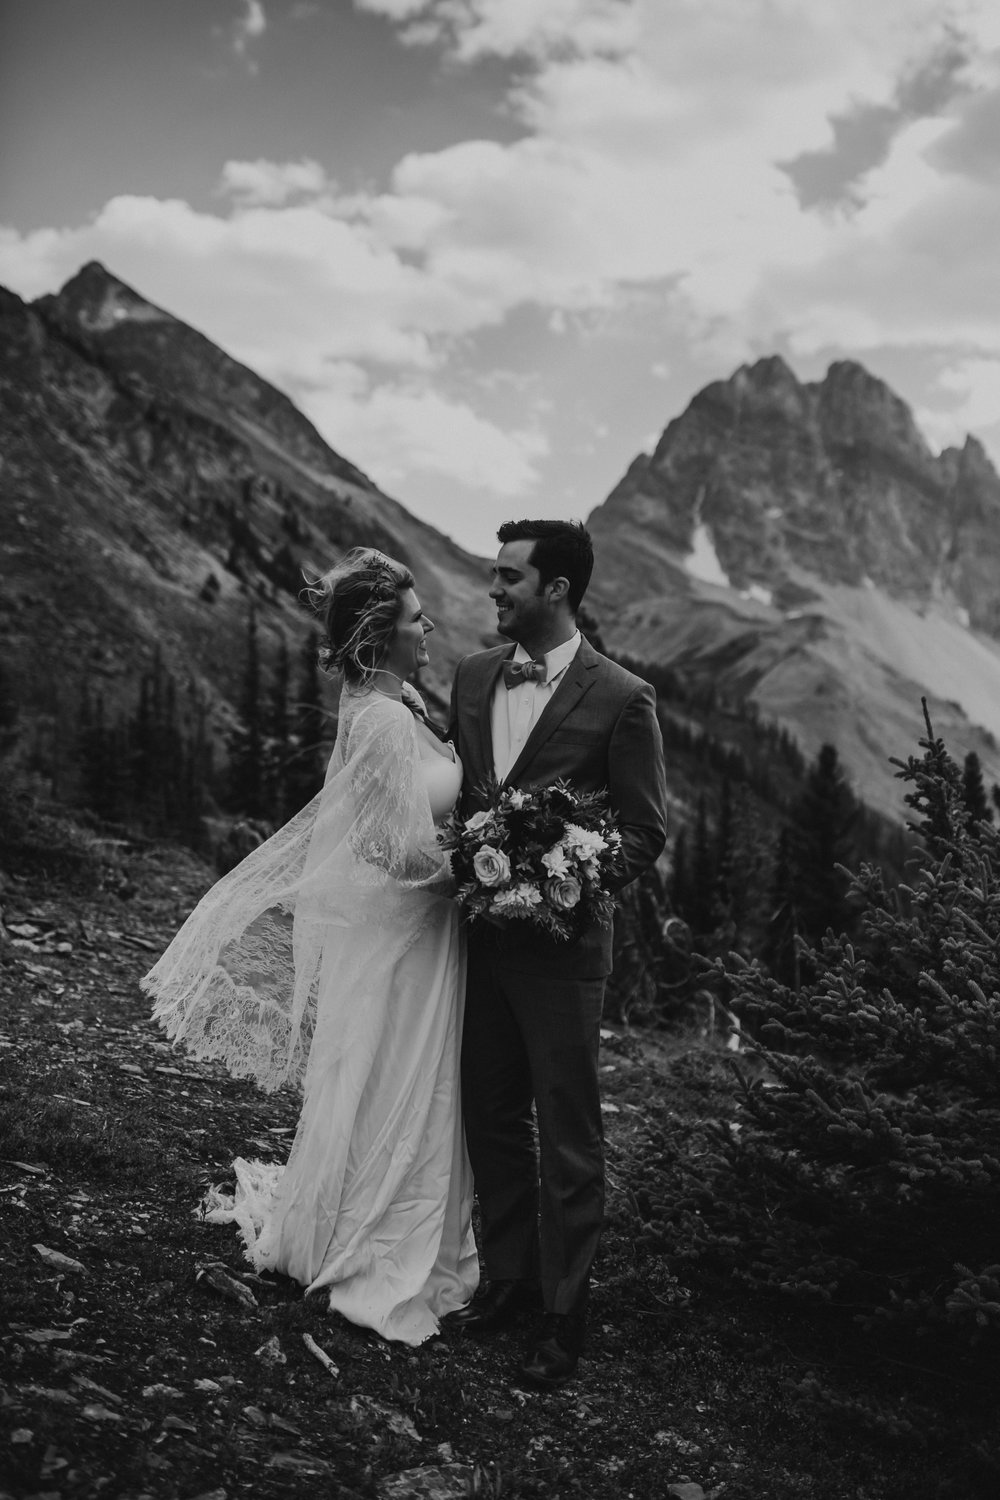 Banff National Park, Alberta Canada Elopement - Grace and Jaden Photography (58).jpg